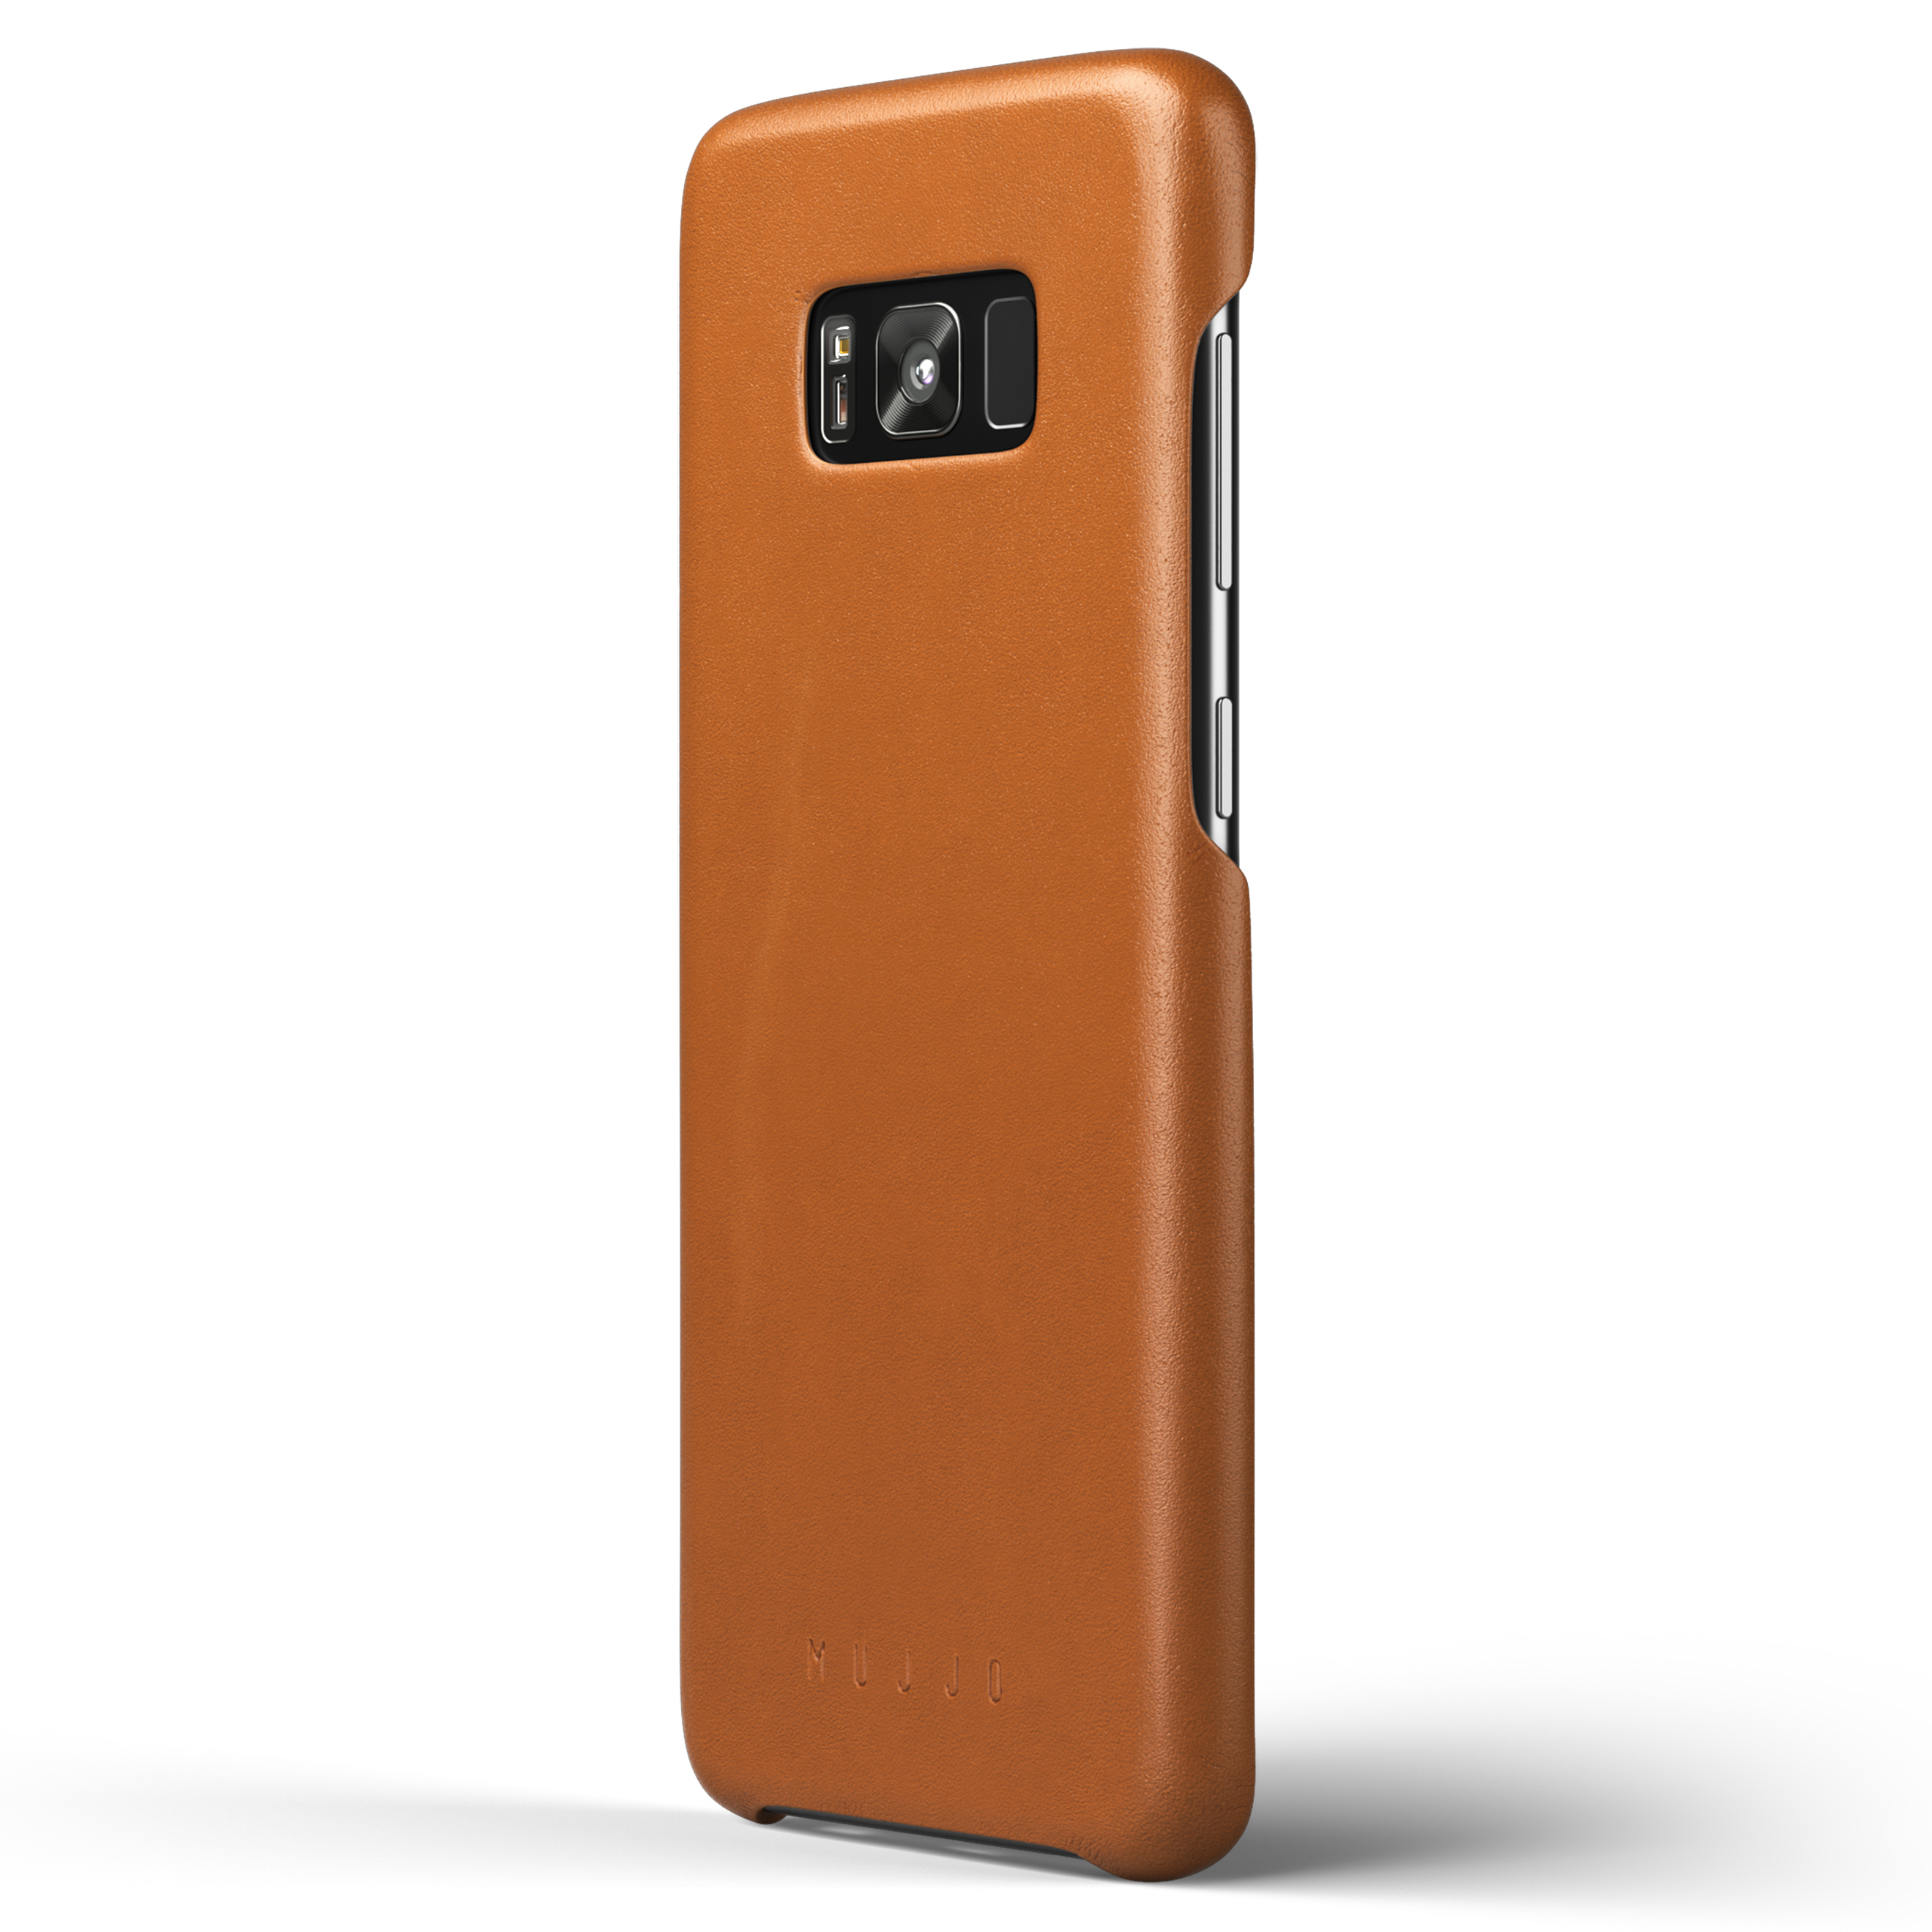 new styles ceedf ca4e8 Details about NEW Mujjo Leather Slim Protective Case for Samsung Galaxy S8  Plus - Saddle Tan